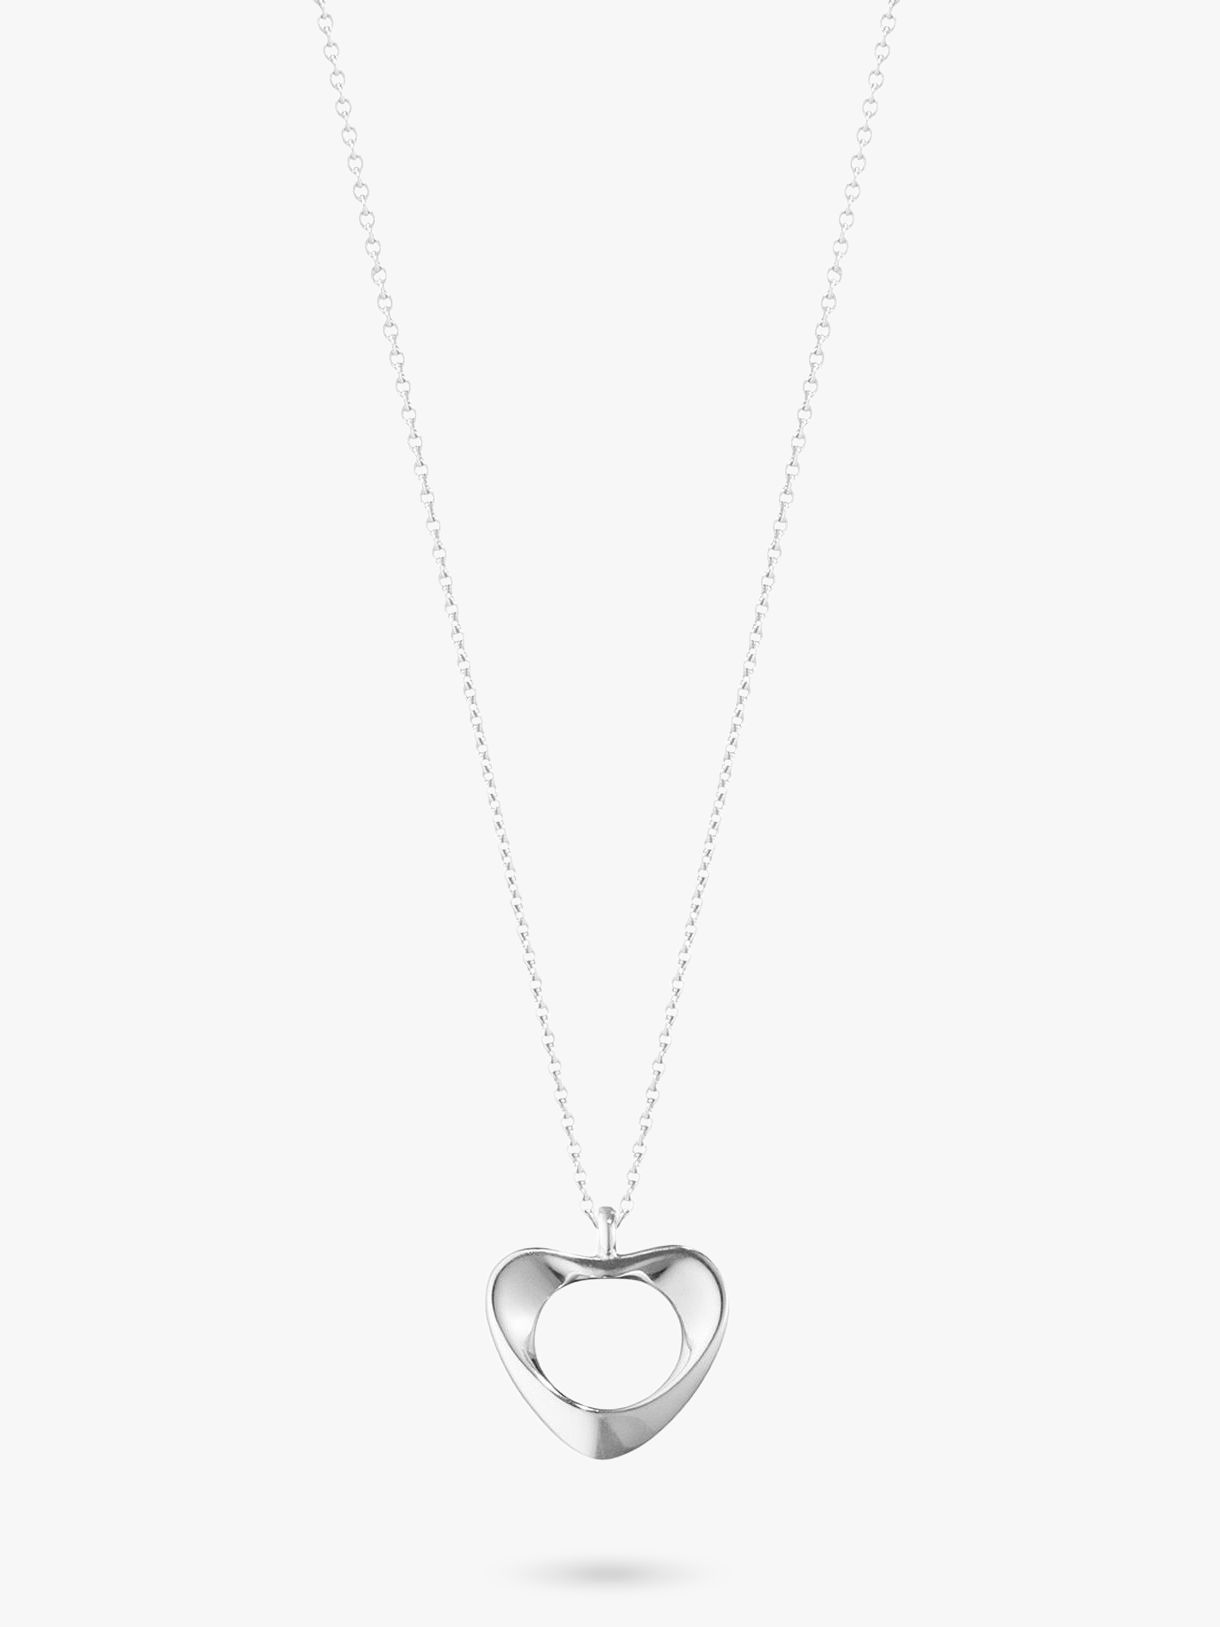 Georg Jensen Georg Jensen Sterling Silver Small Heart Necklace, Silver